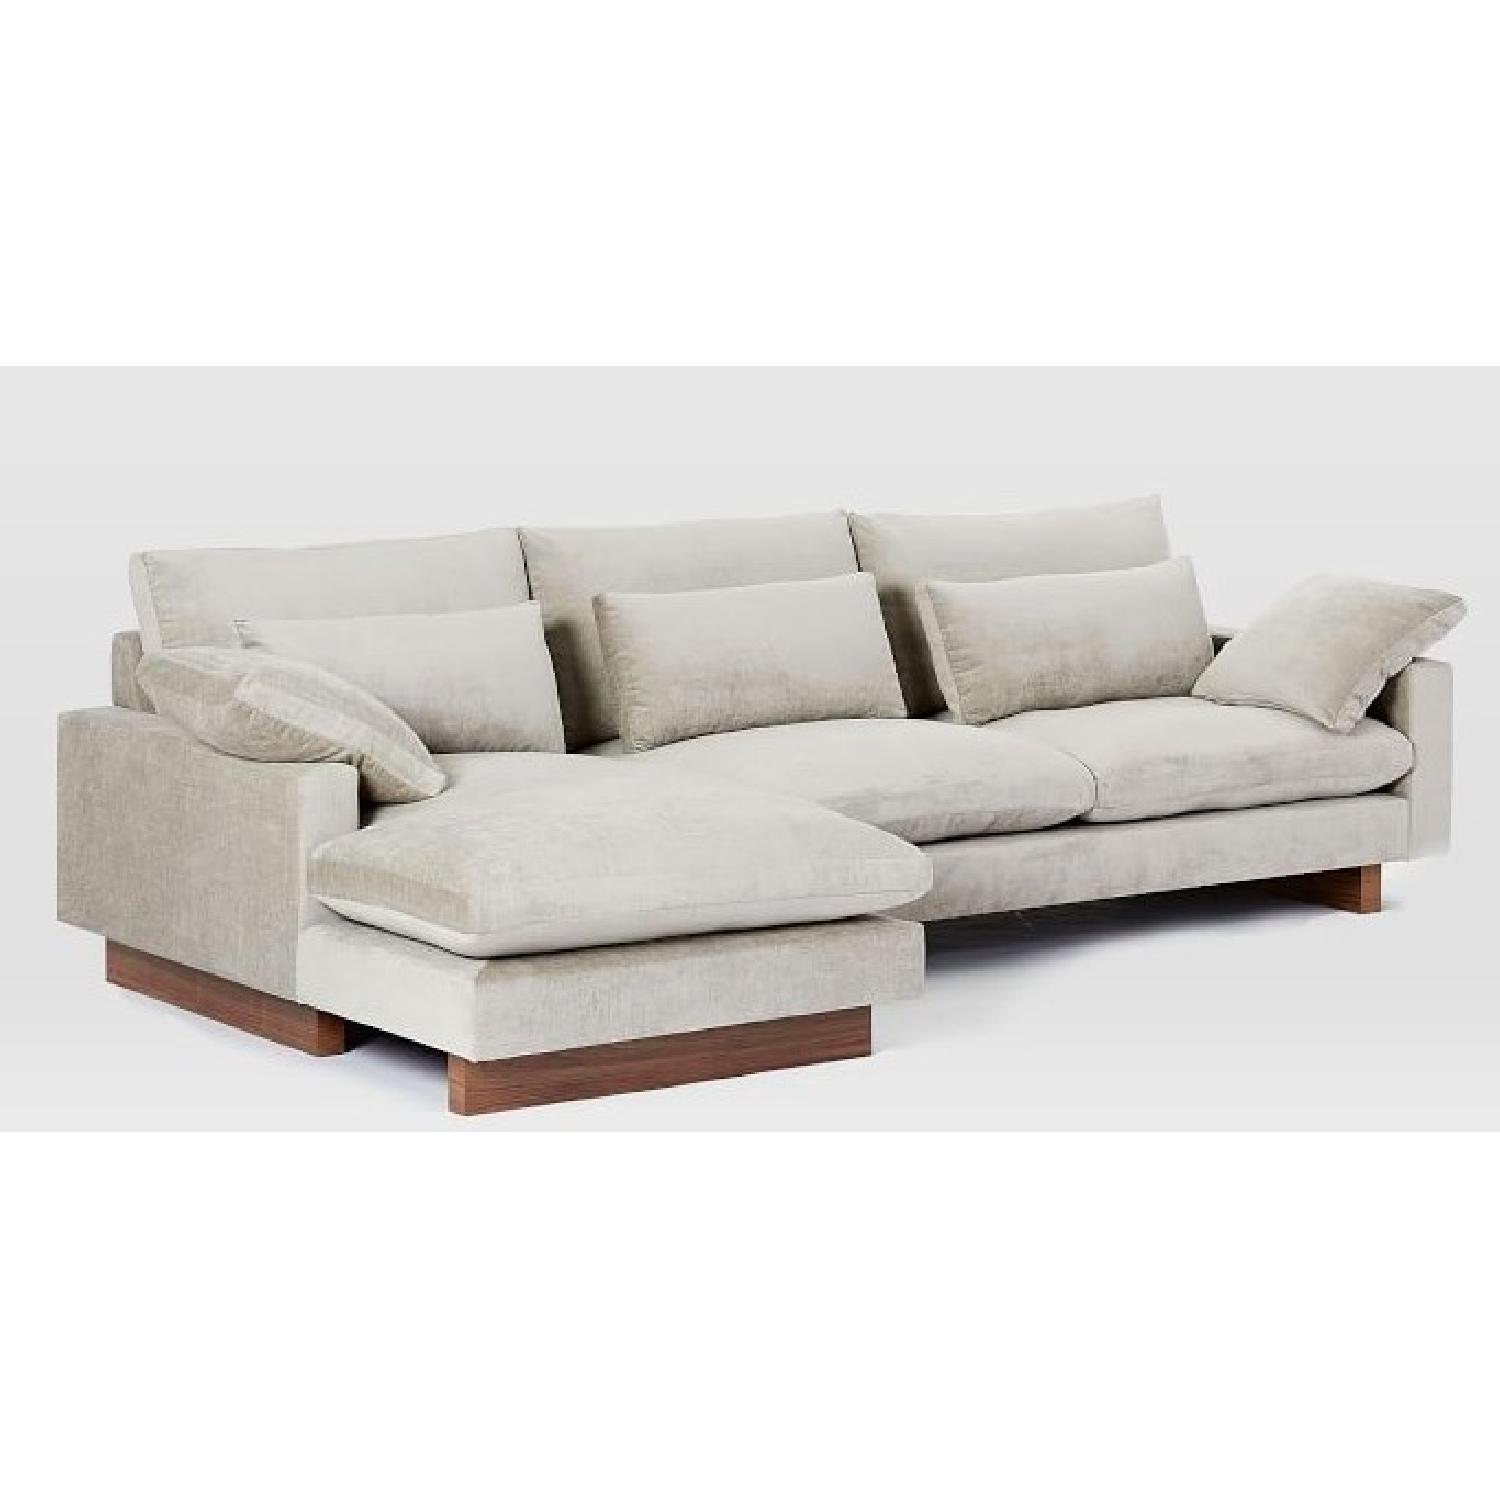 West Elm 2-Piece Large Chaise Sectional Sofa - image-2